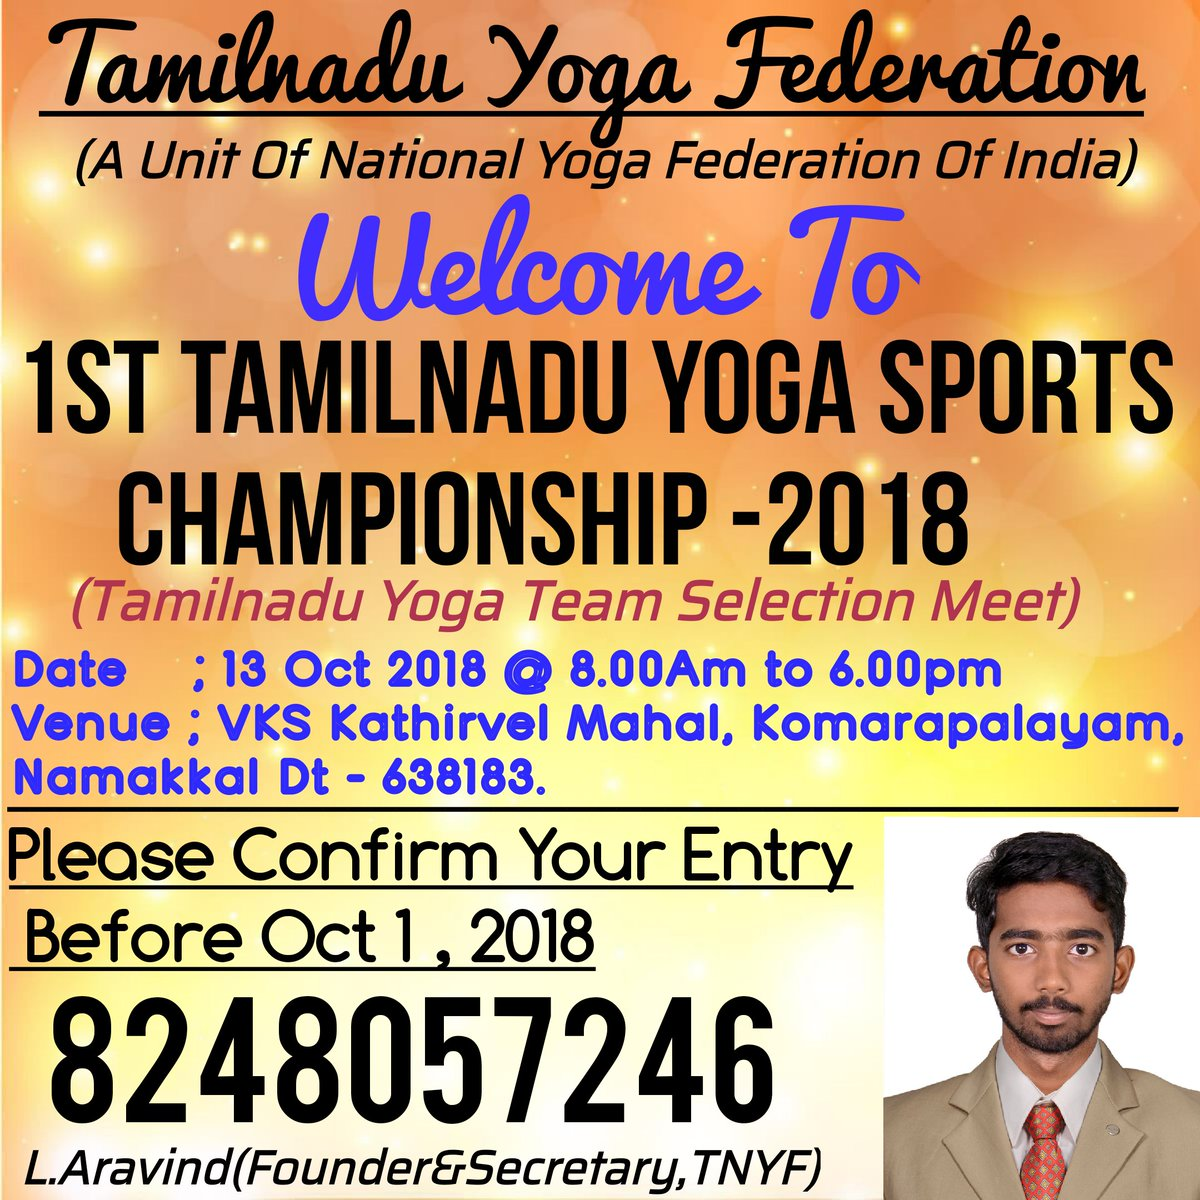 Tamilnadu Yoga Federation on Twitter: